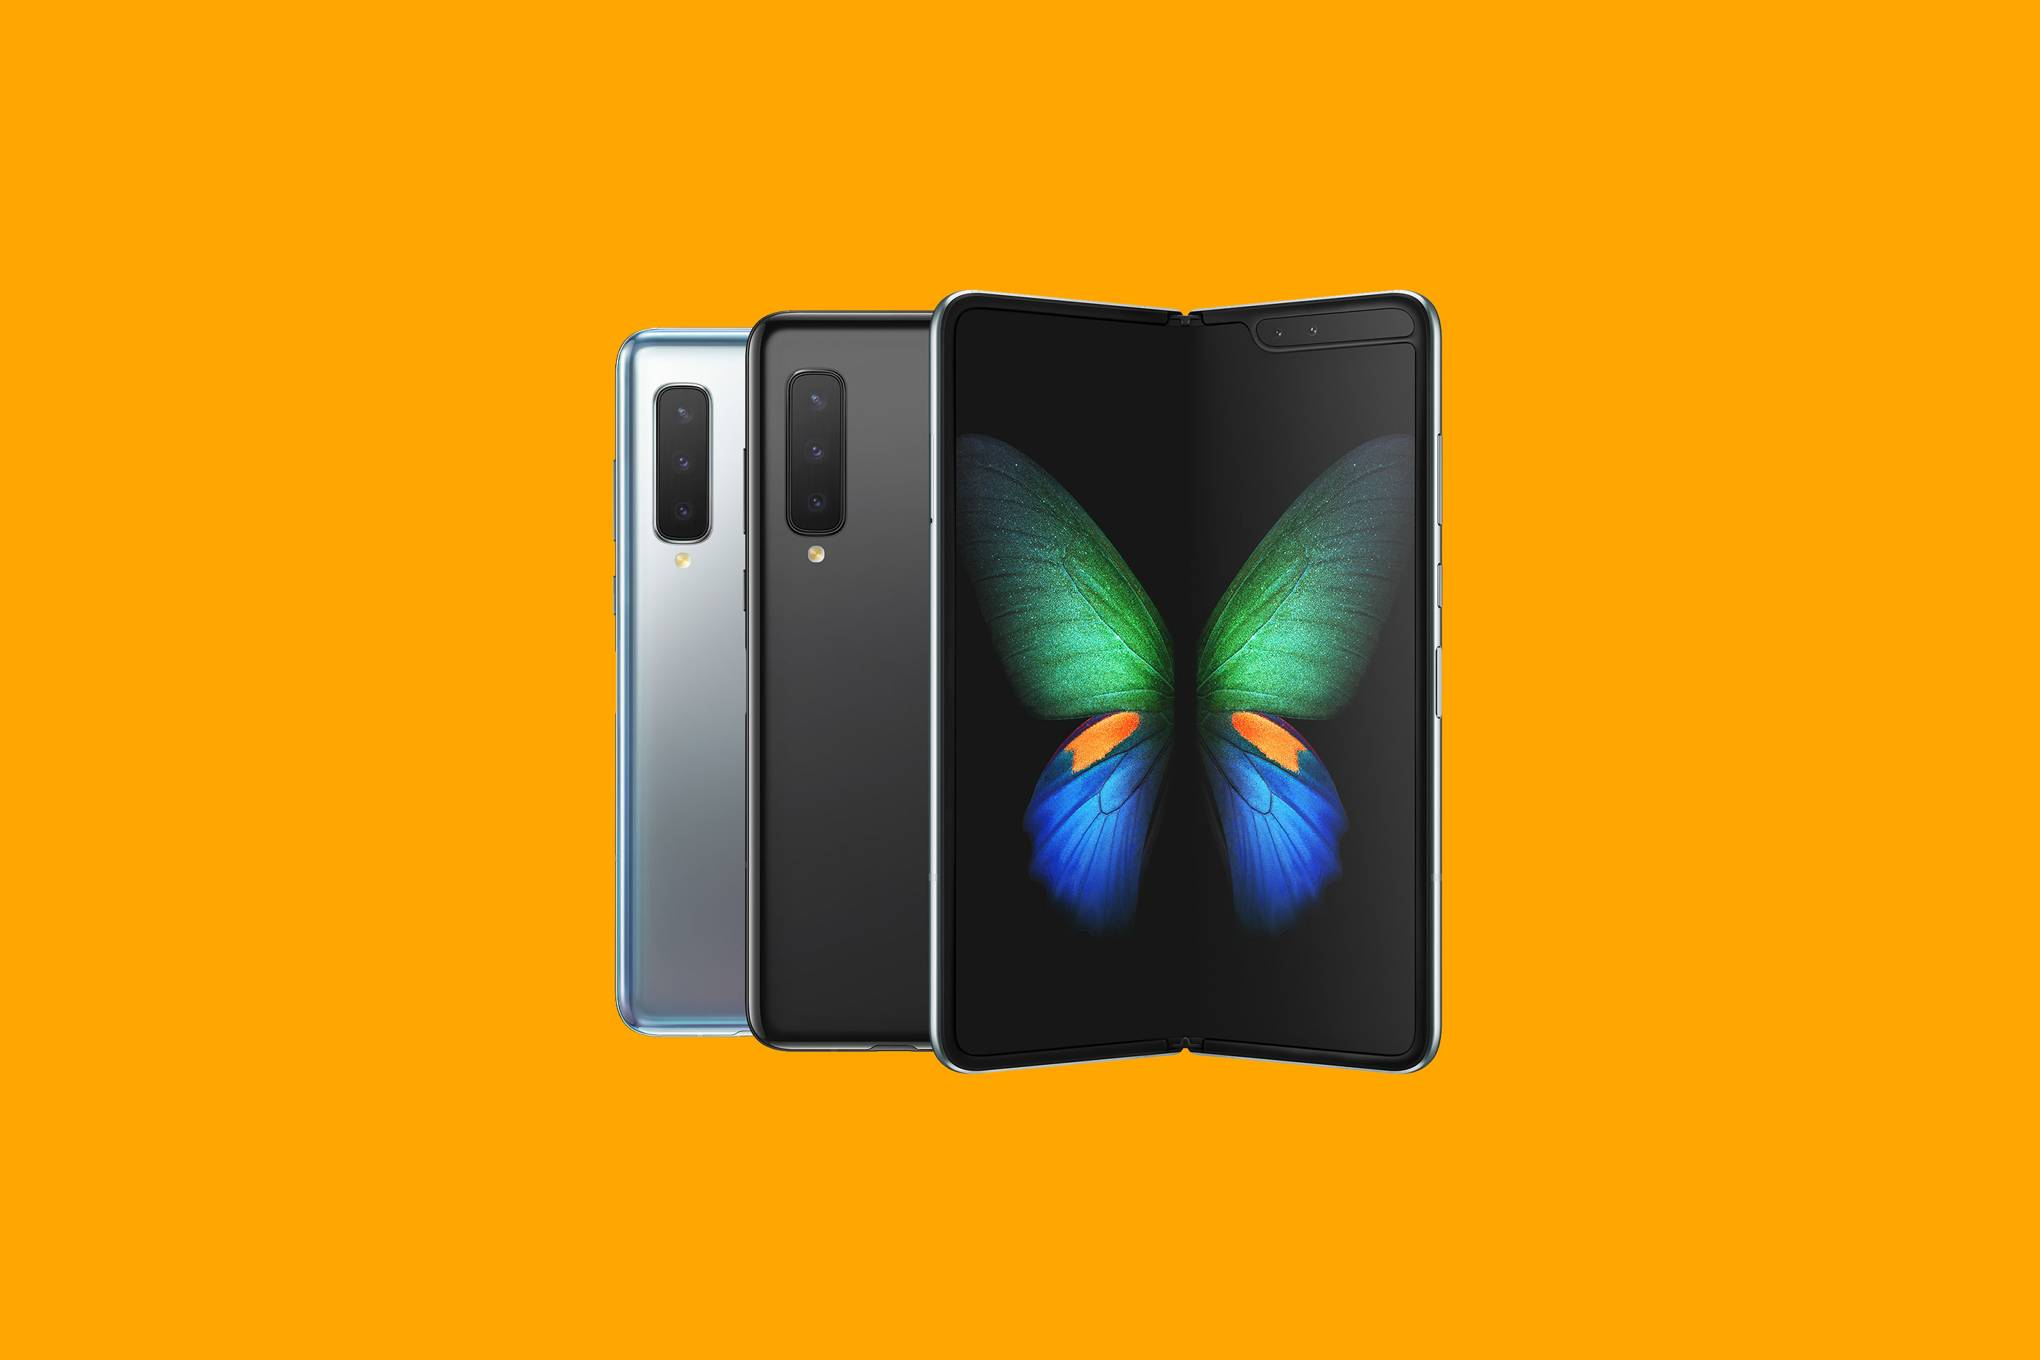 After weeks of pain, I can't help but hate the Samsung Galaxy Fold